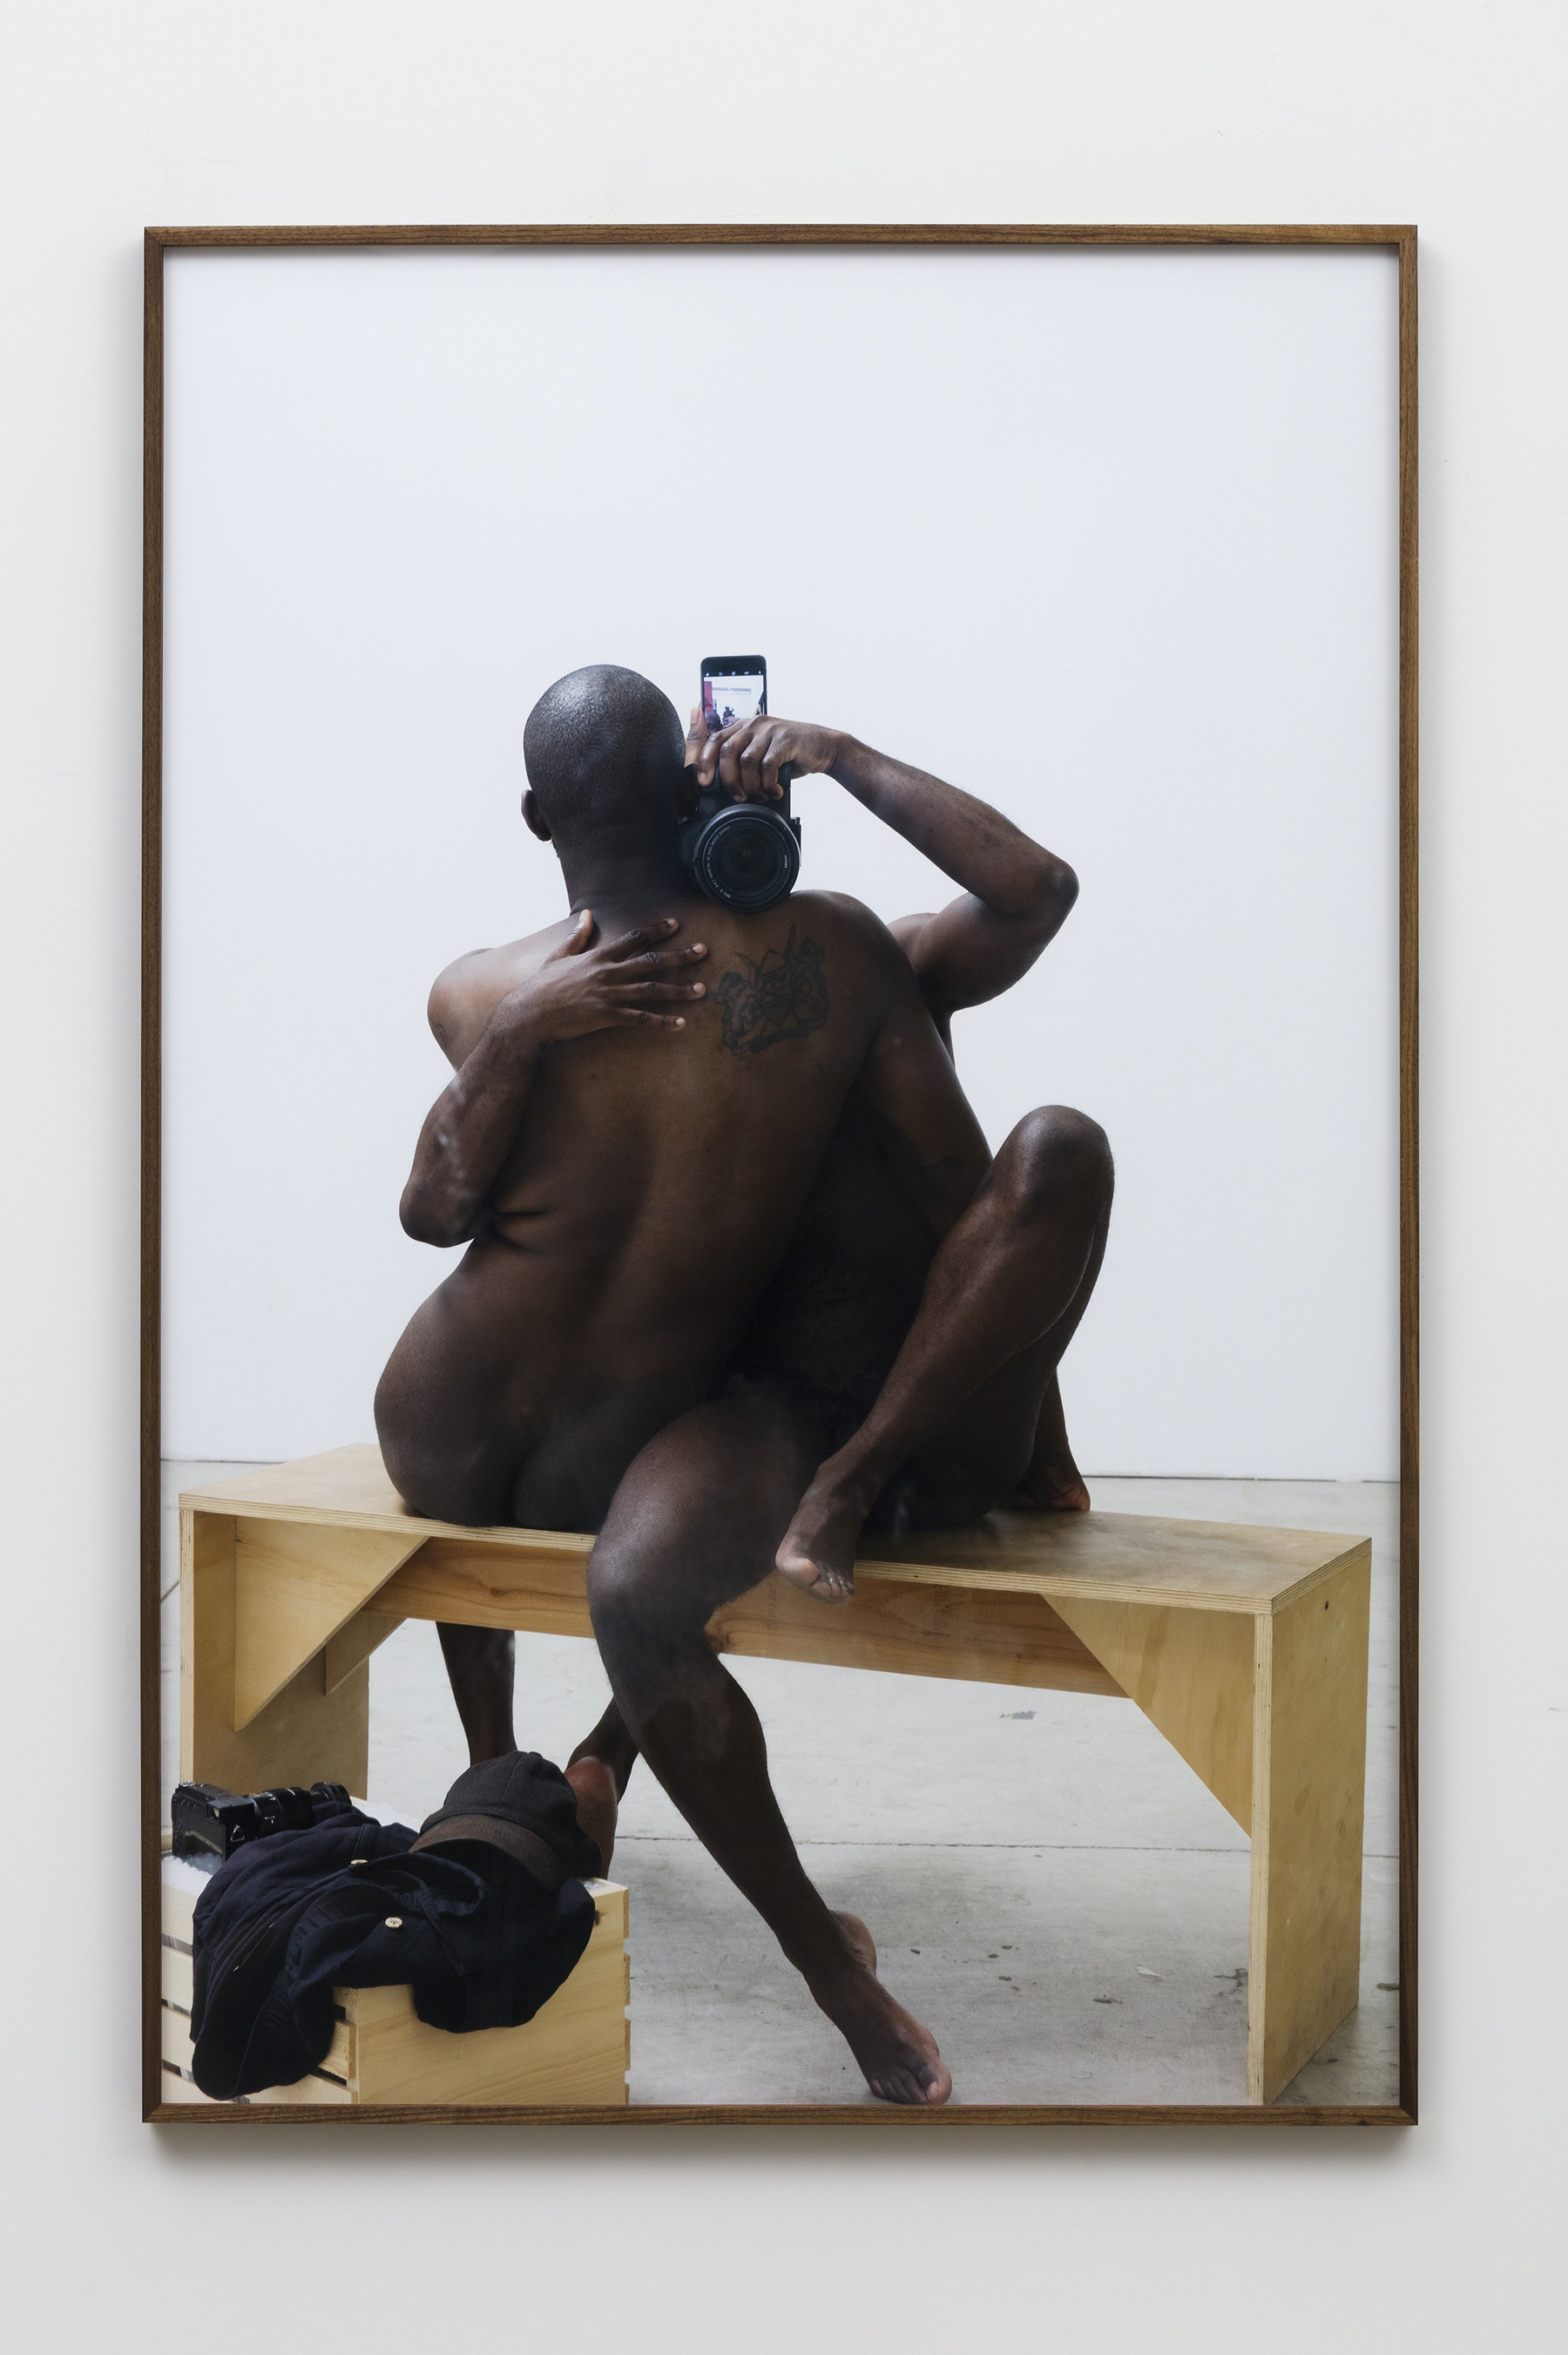 """Paul Mpagi Sepuya """"Figure (0X5A0918),"""" 2019 Archival pigment print 75 x 50"""" [HxW] (190.5 x 127 cm) Edition of 5, 2 AP Inventory #SEP652 Courtesy of the artist and Vielmetter Los Angeles Photo credit: Jeff McLane"""